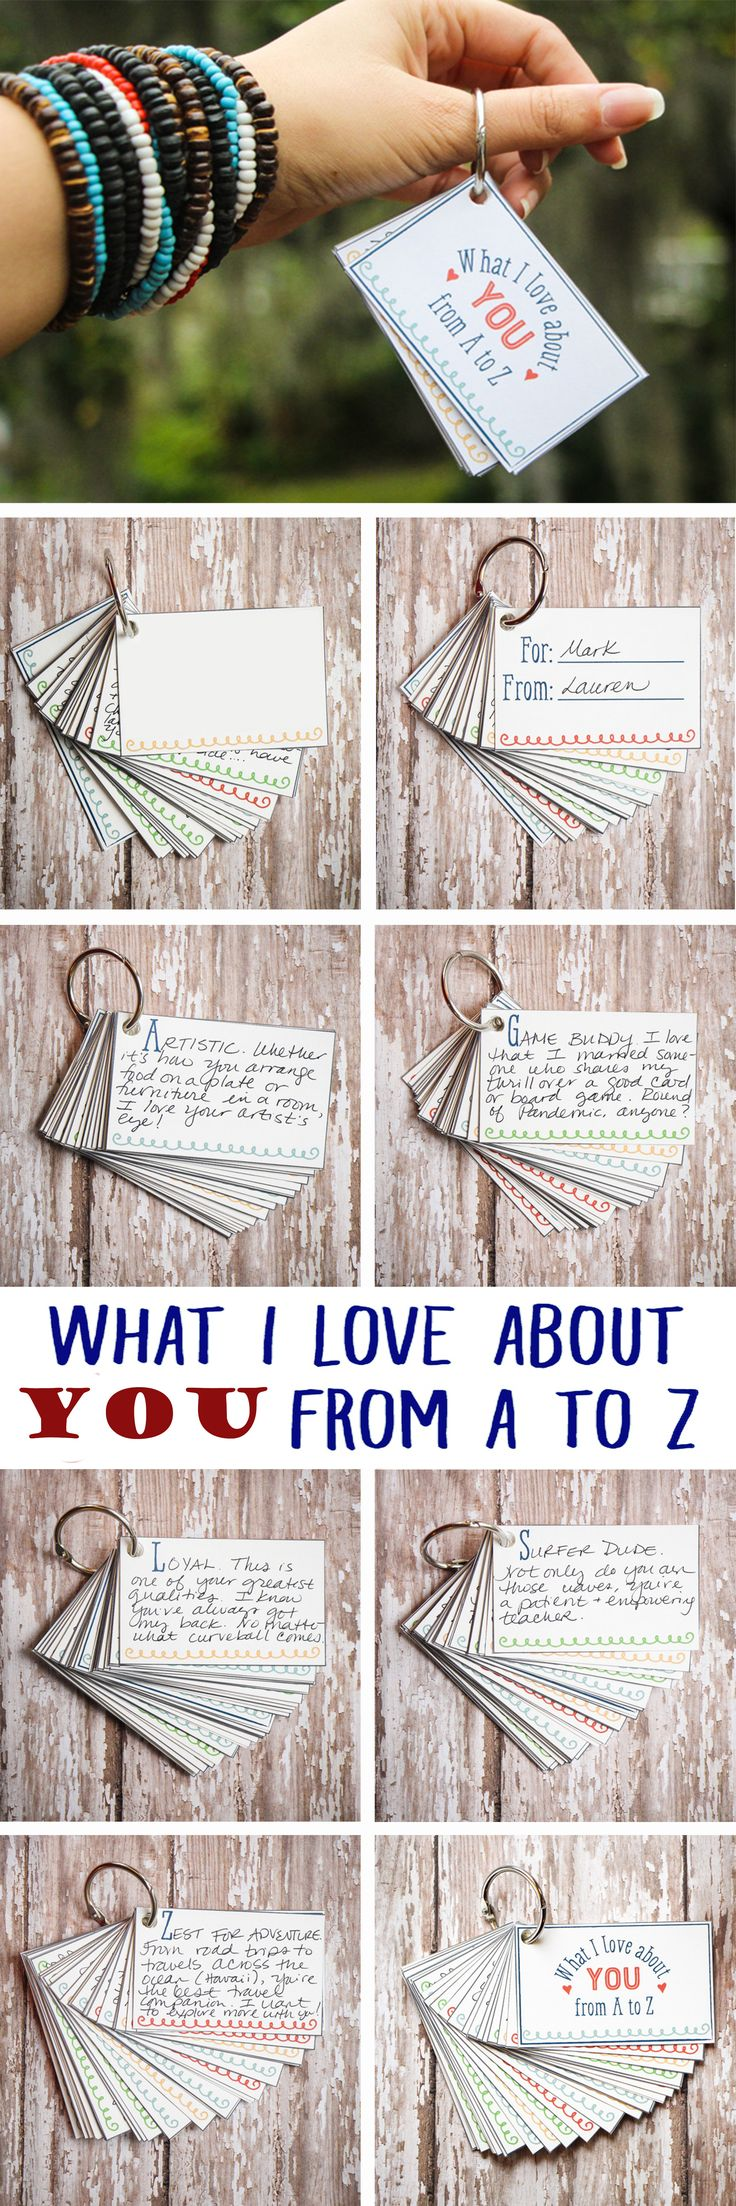 Best 25+ Cute relationship gifts ideas on Pinterest | Cute ...